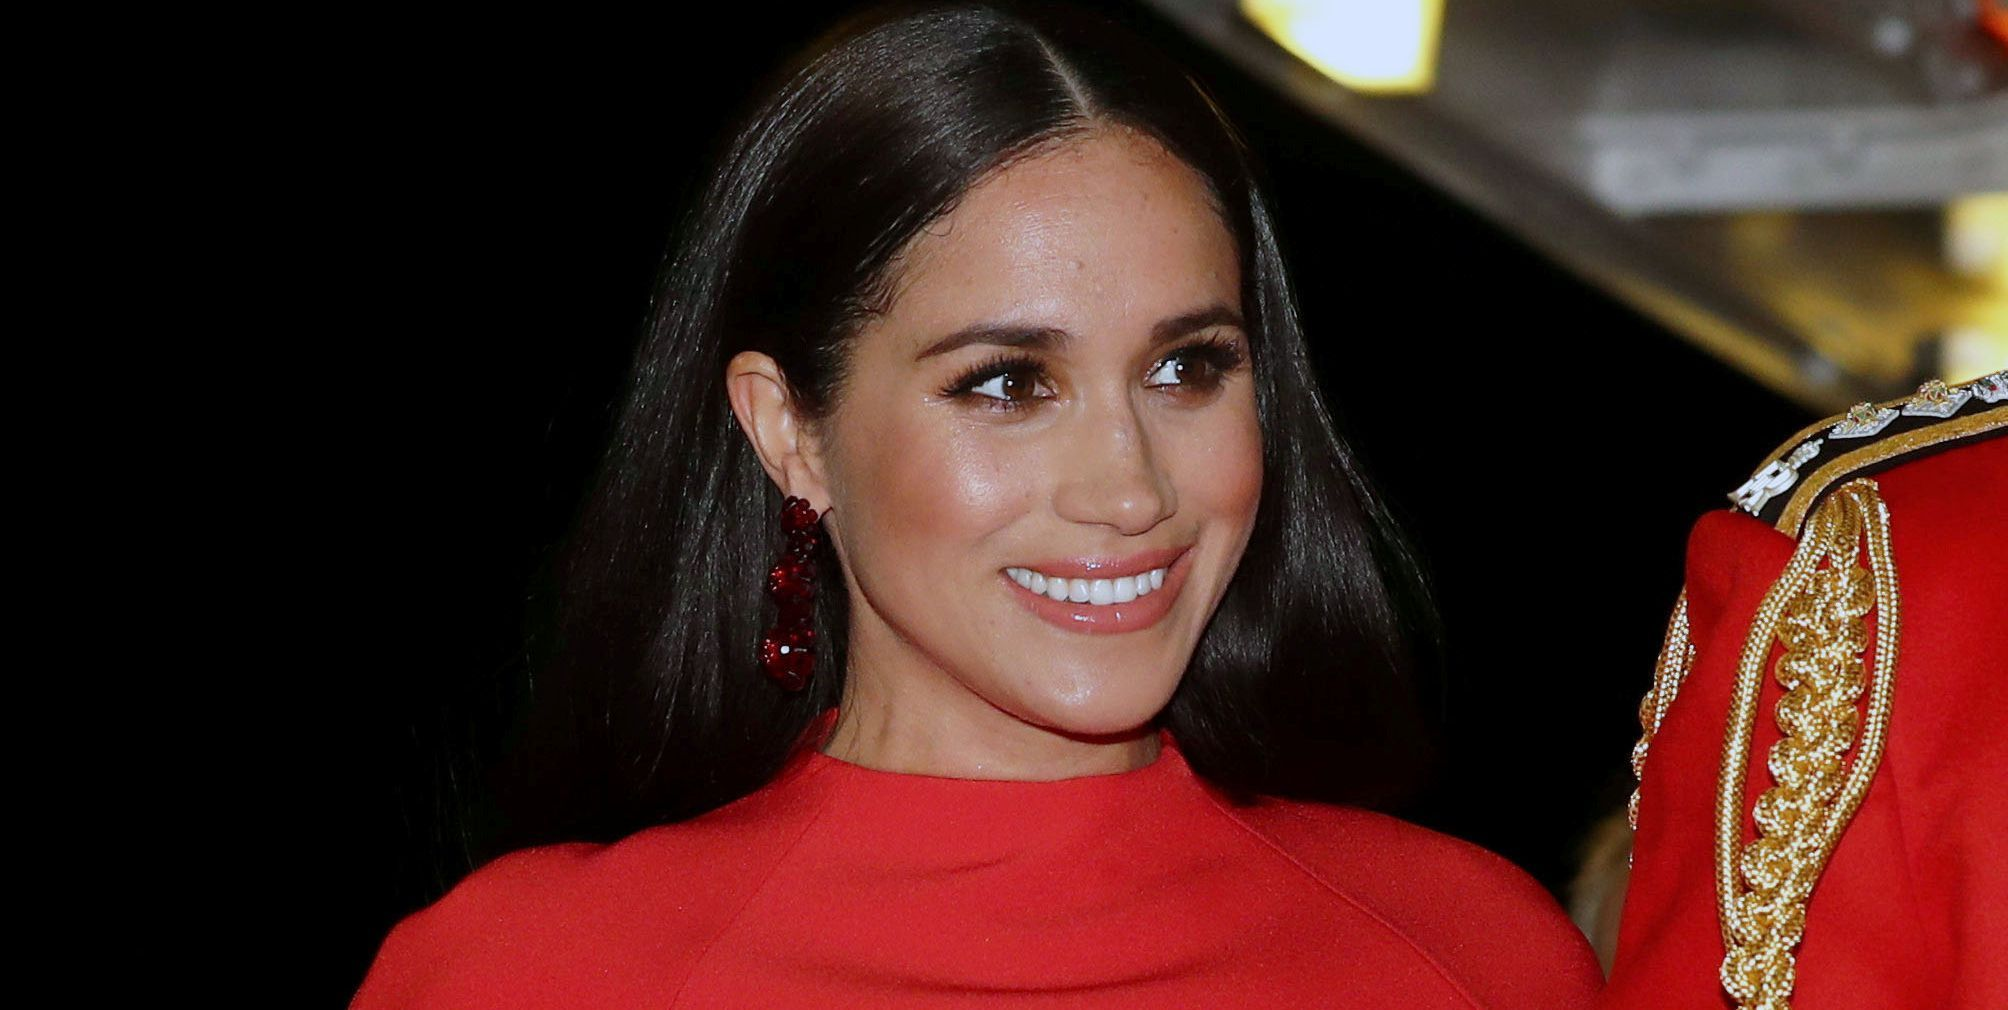 maquillage de Meghan Markle au Mountbatten Festival of Music 2020